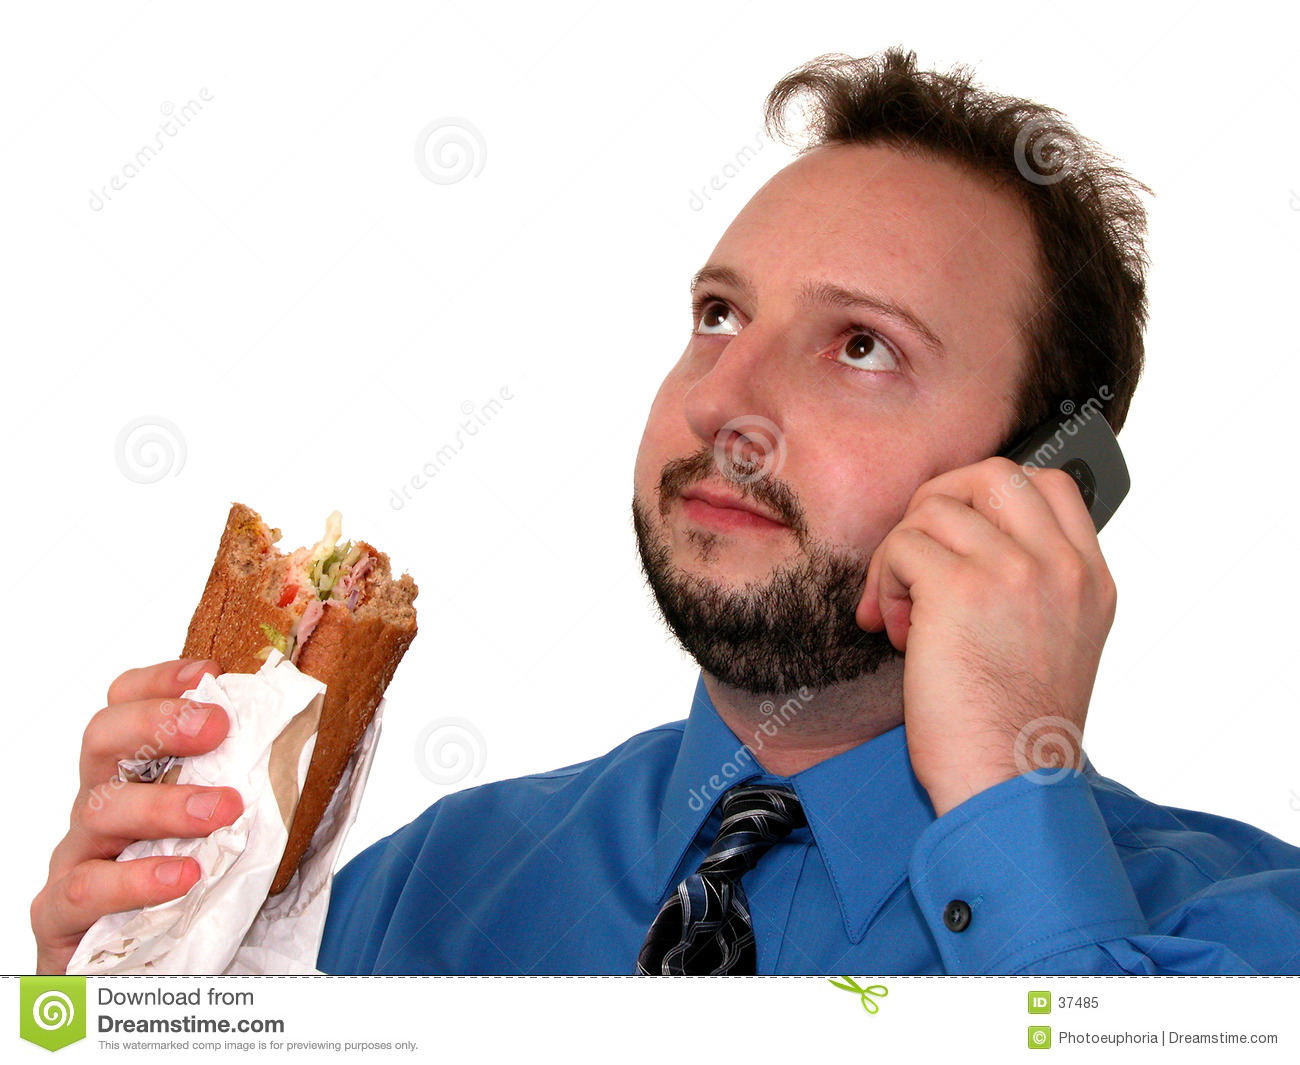 Business Man in Blue (Eating Lunch)